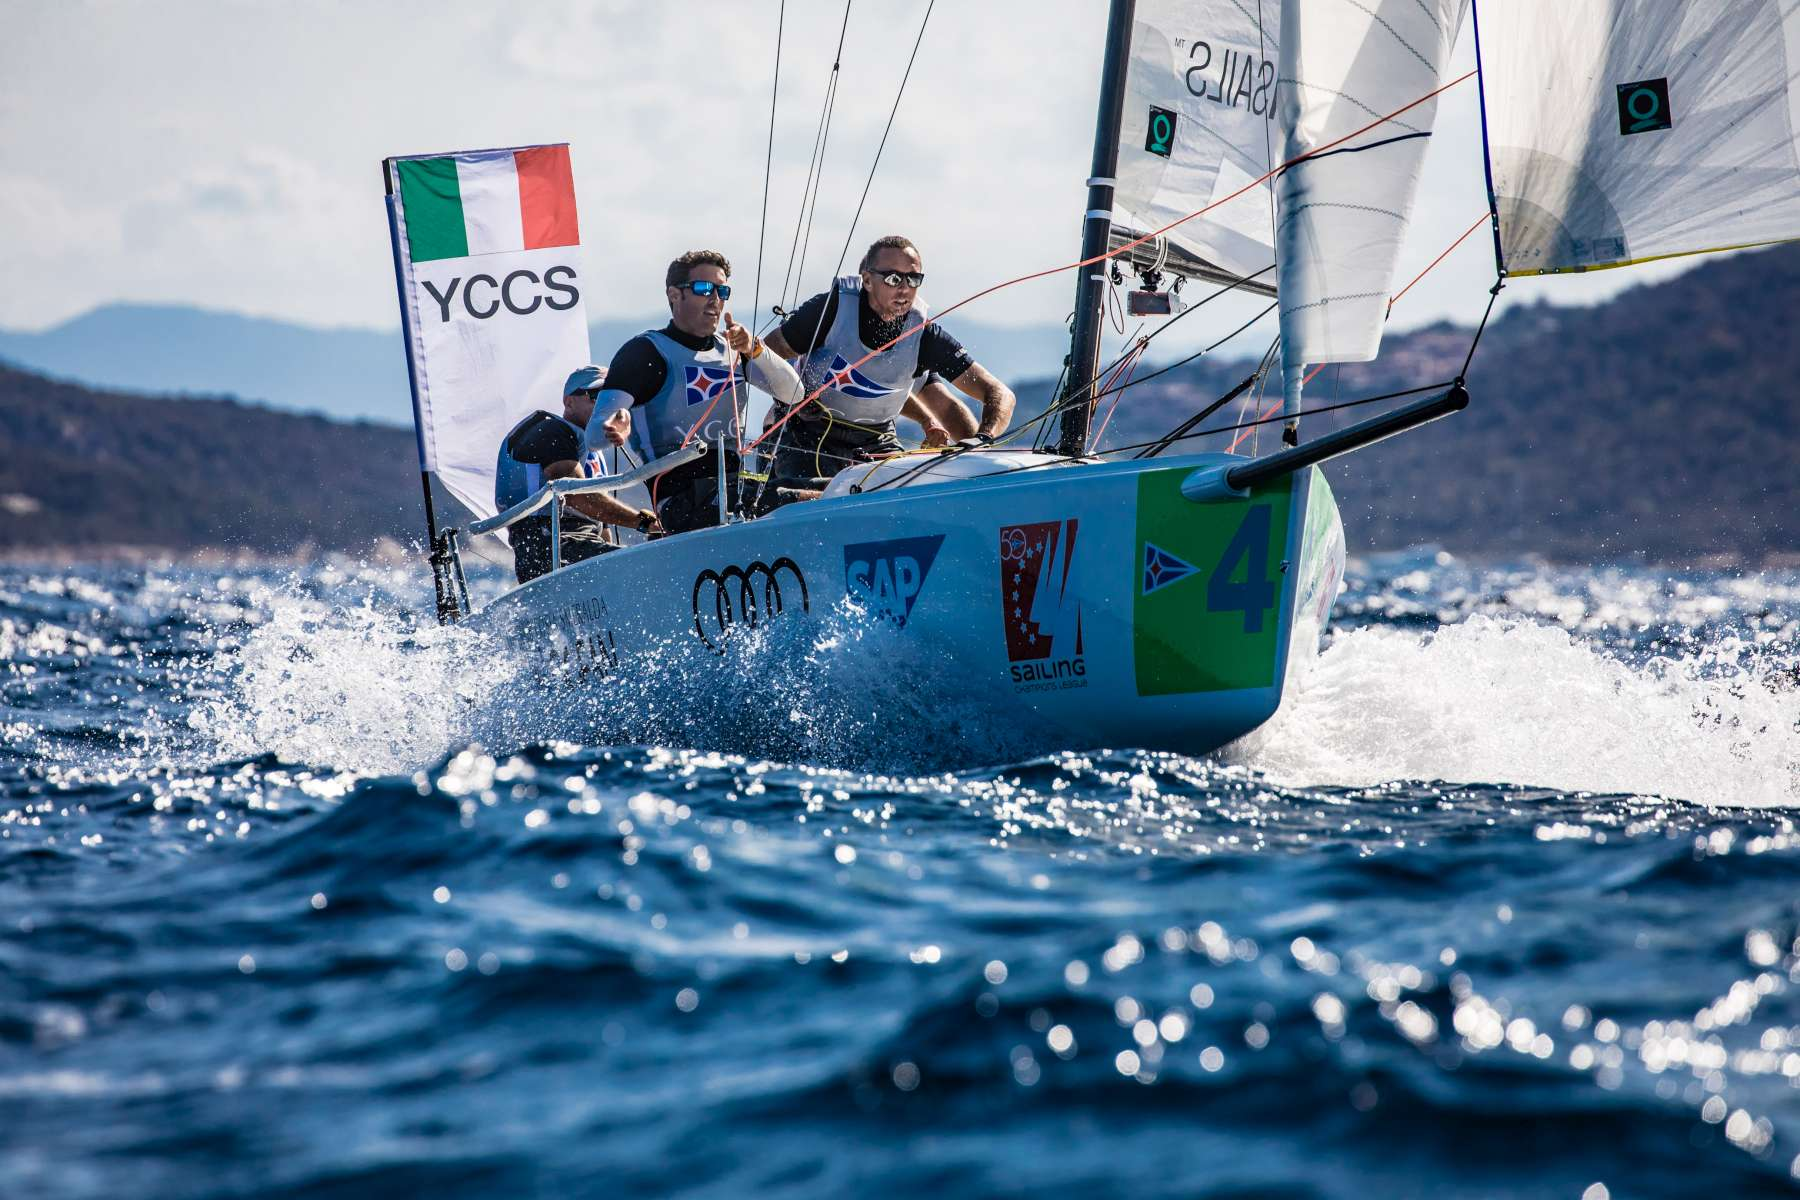 Intense penultimate day at Audi SAILING Champions League Final - NEWS - Yacht Club Costa Smeralda